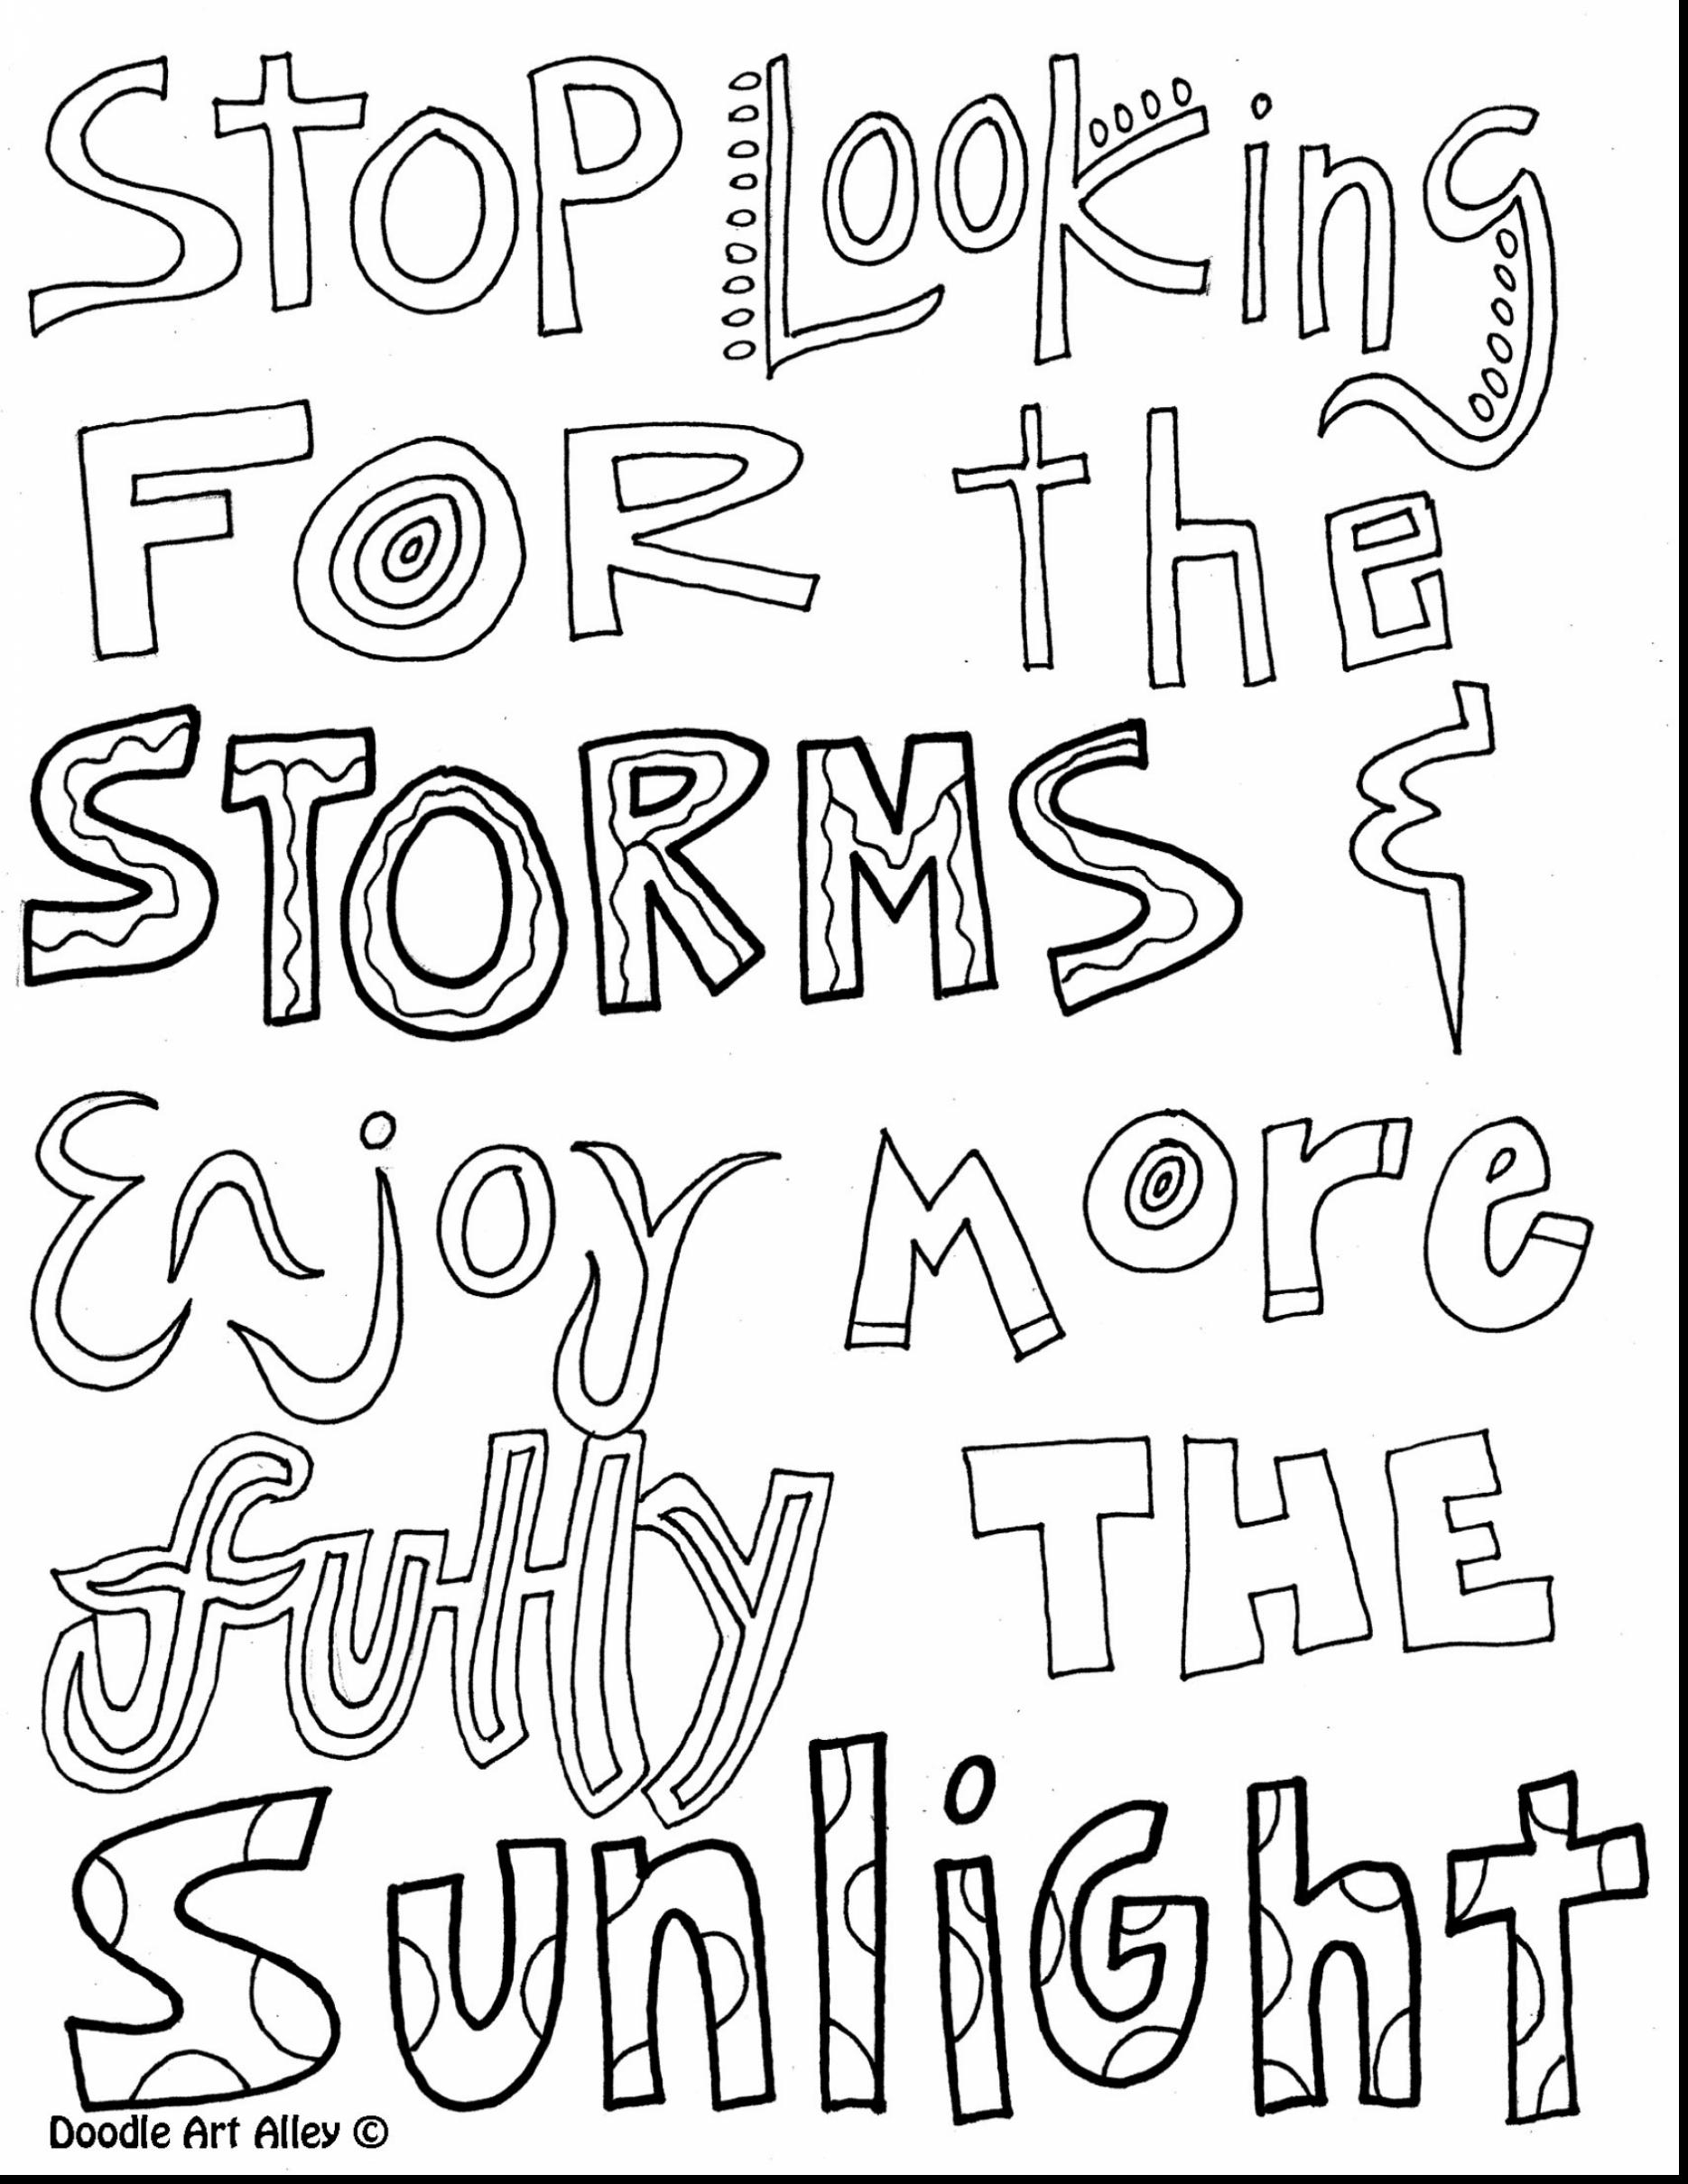 Quote Coloring Pages to Print Printable Download Of Fresh Inspirational Coloring Pages for Adults Line and Studynow to Print